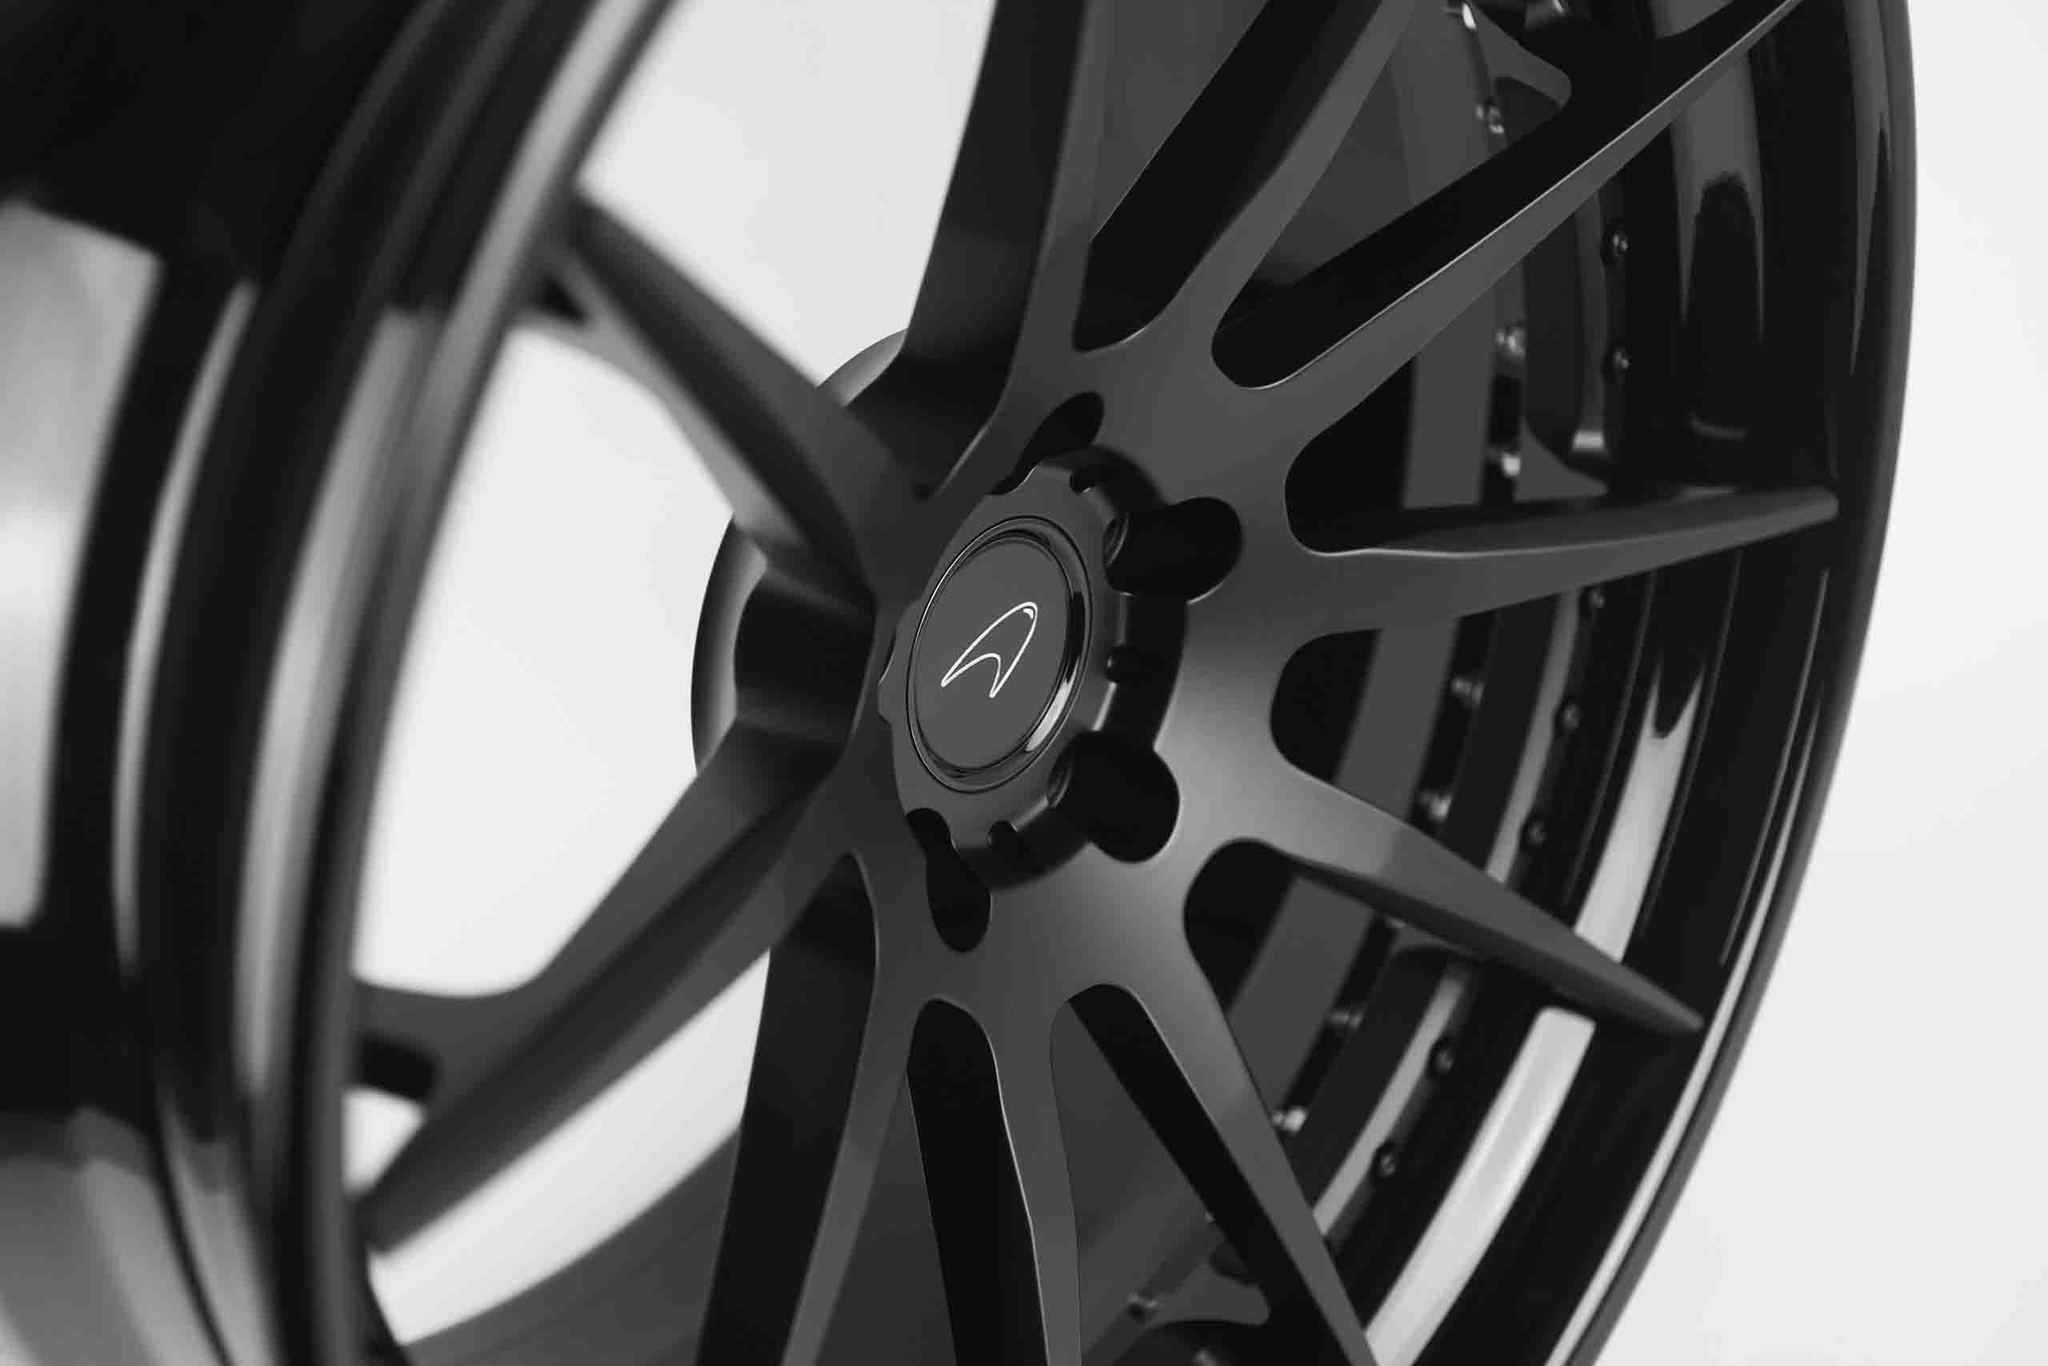 images-products-1-2724-232975012-brixton-forged-r10-targa-series-forged-wheels-mclaren-720s-black-05.jpg